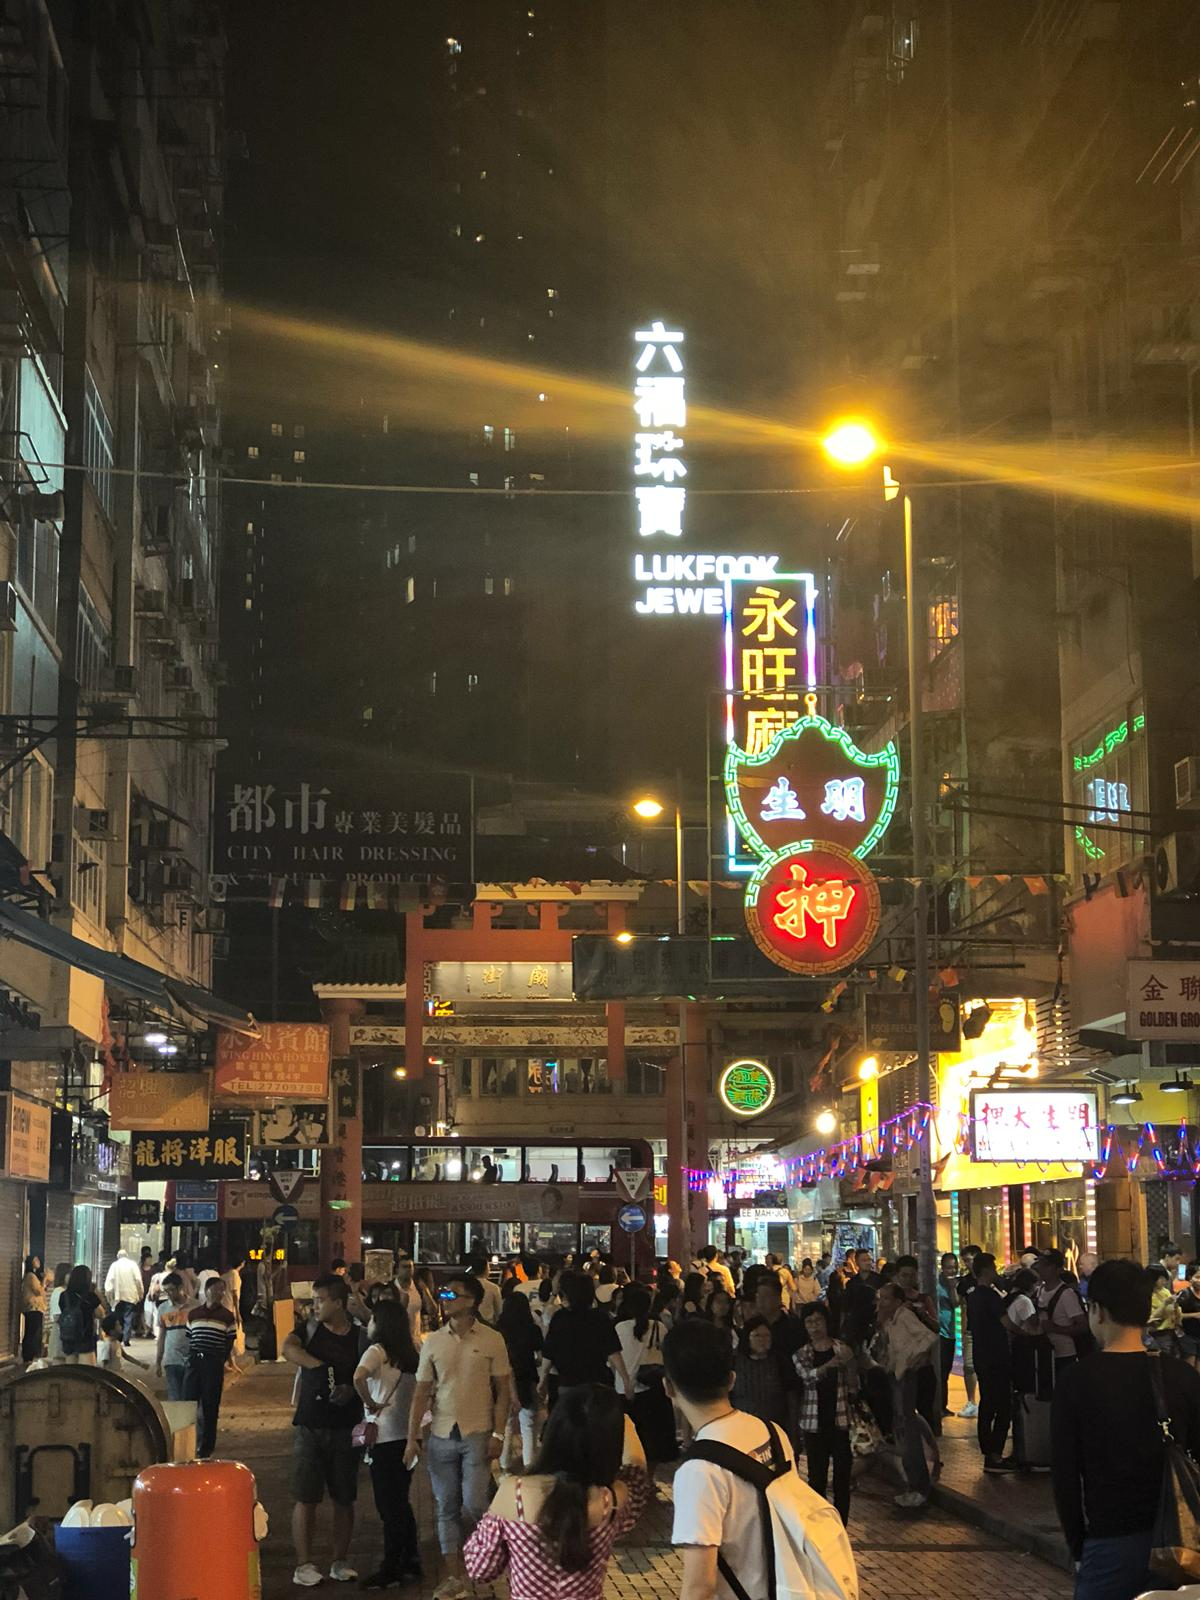 Nighttime in Kowloon is lively. Shops and restaurants are packed, and everyone is out enjoying themselves.